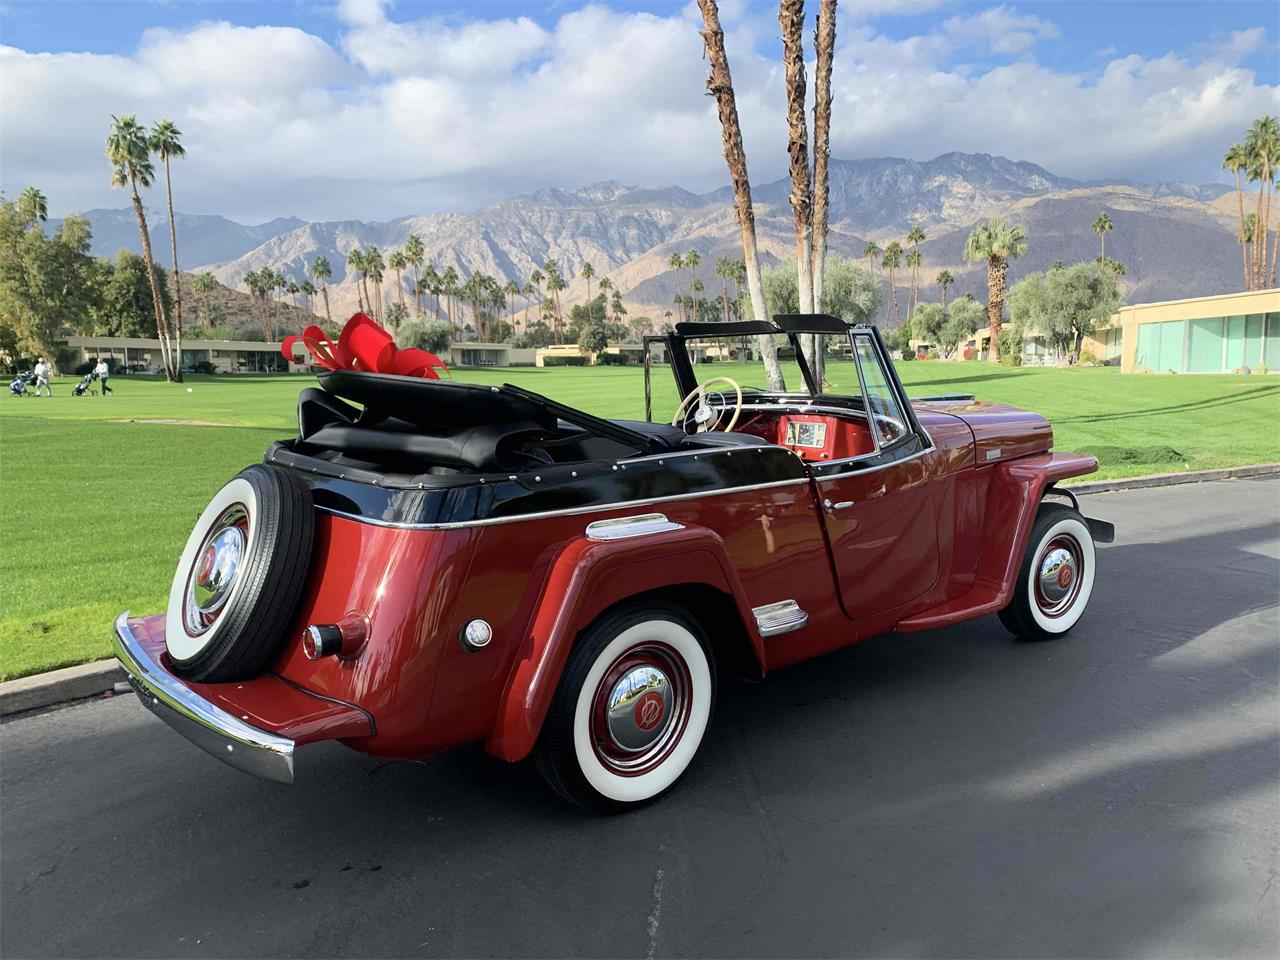 1950 Willys Jeepster (CC-1305509) for sale in Palm Springs, California